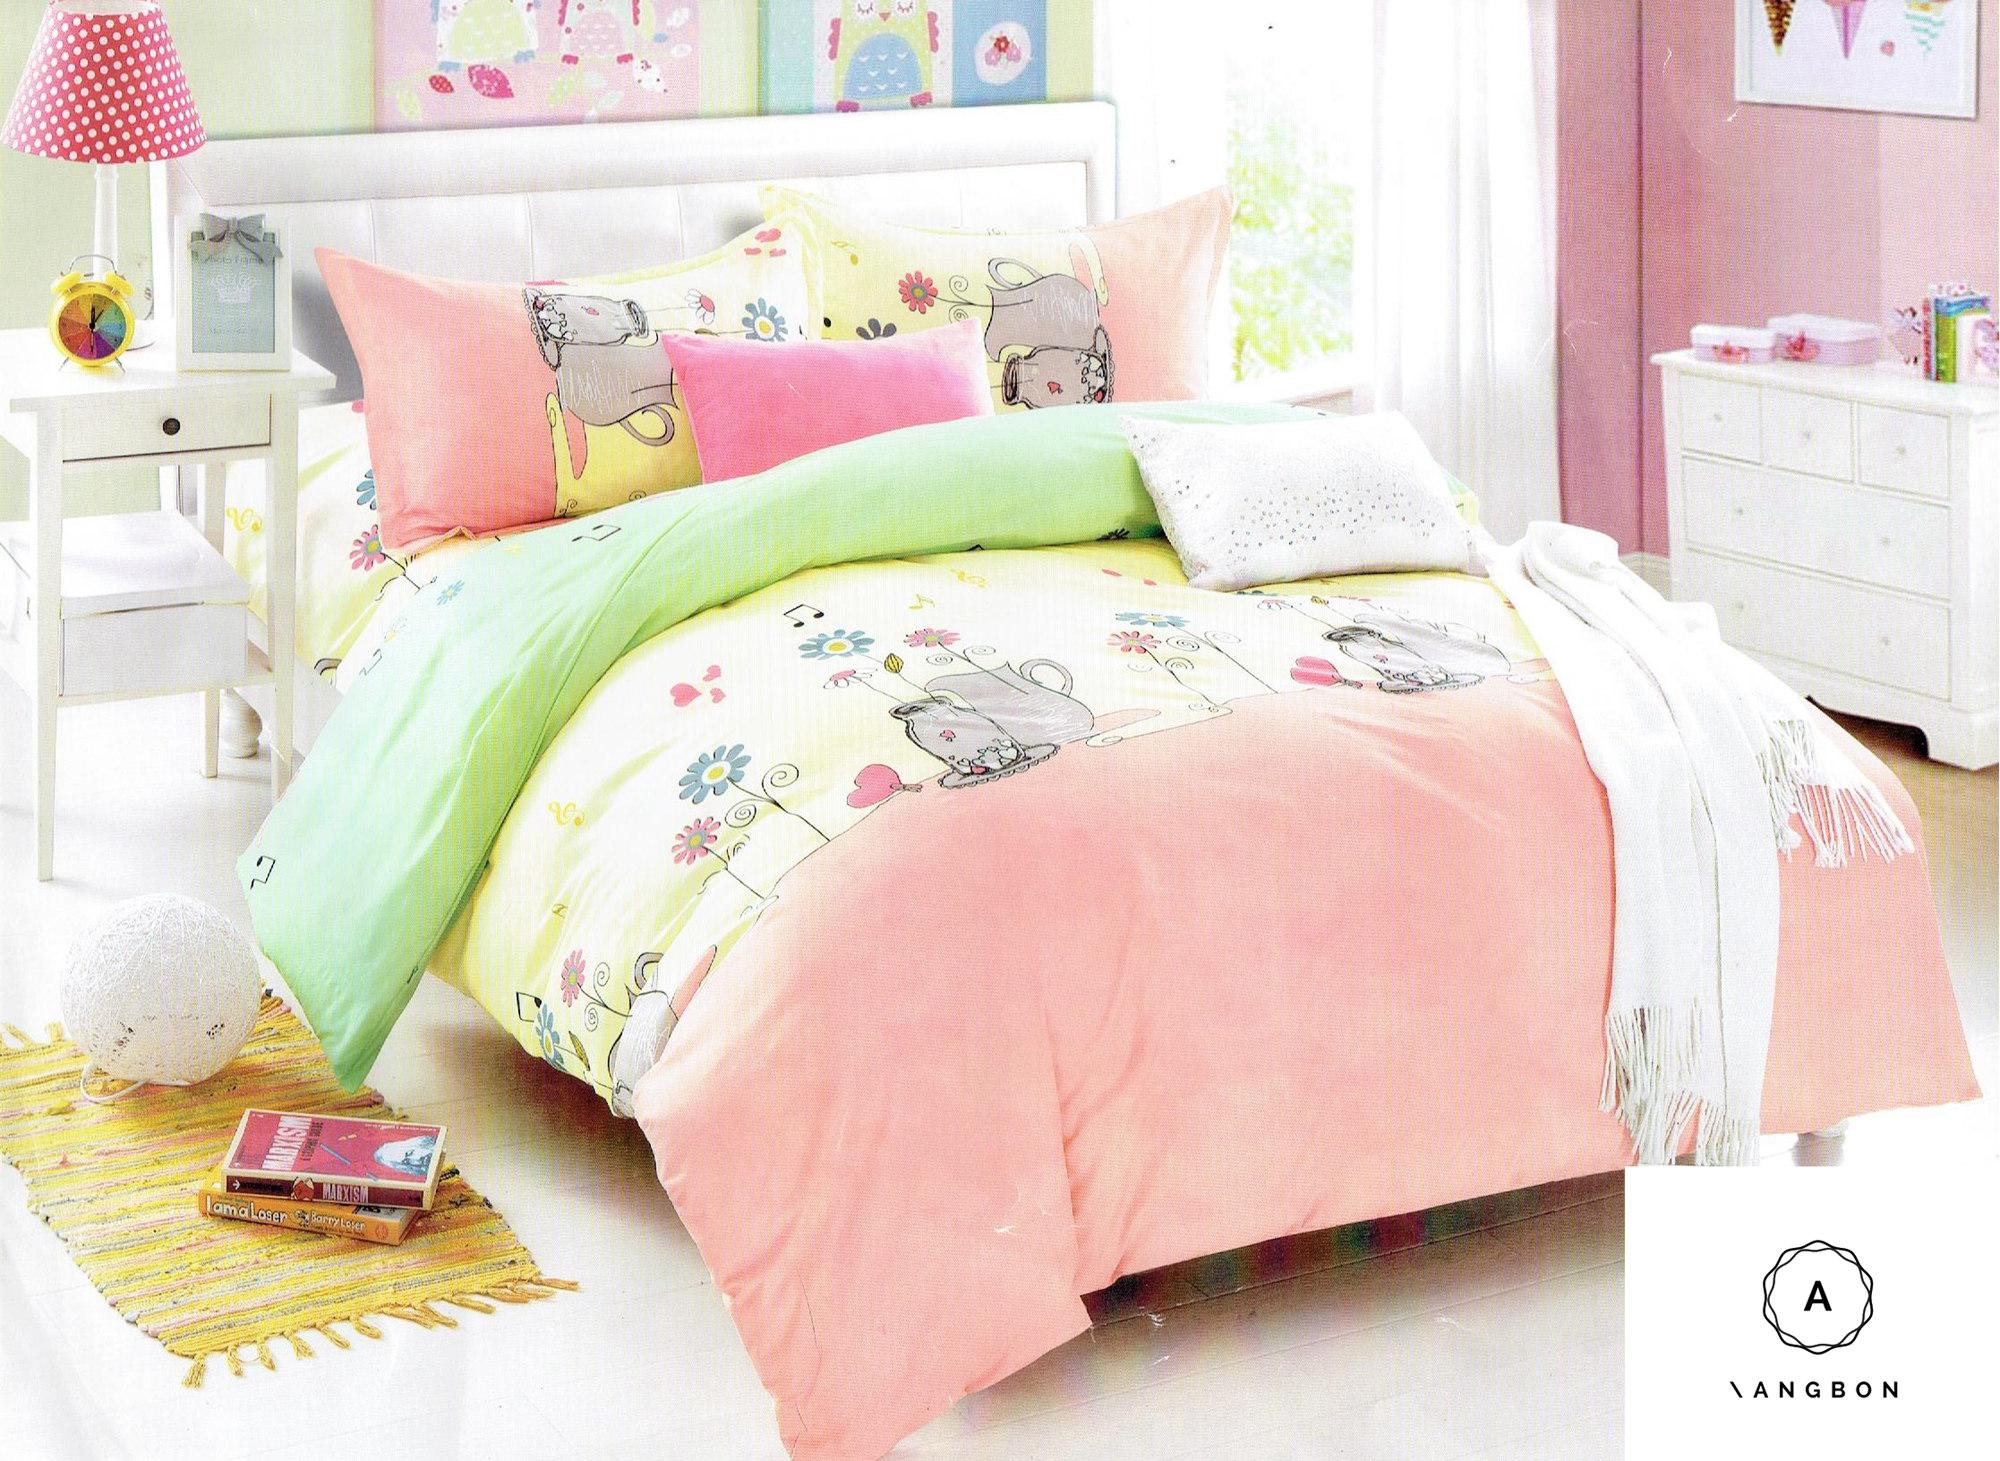 Bed Sheet For Sale Covers Prices Brands Review In Apparatus Folding Fitted Sheets Diagram And Image Angbon 3in1 Single Size Bedding Set Poly Cotton 3675